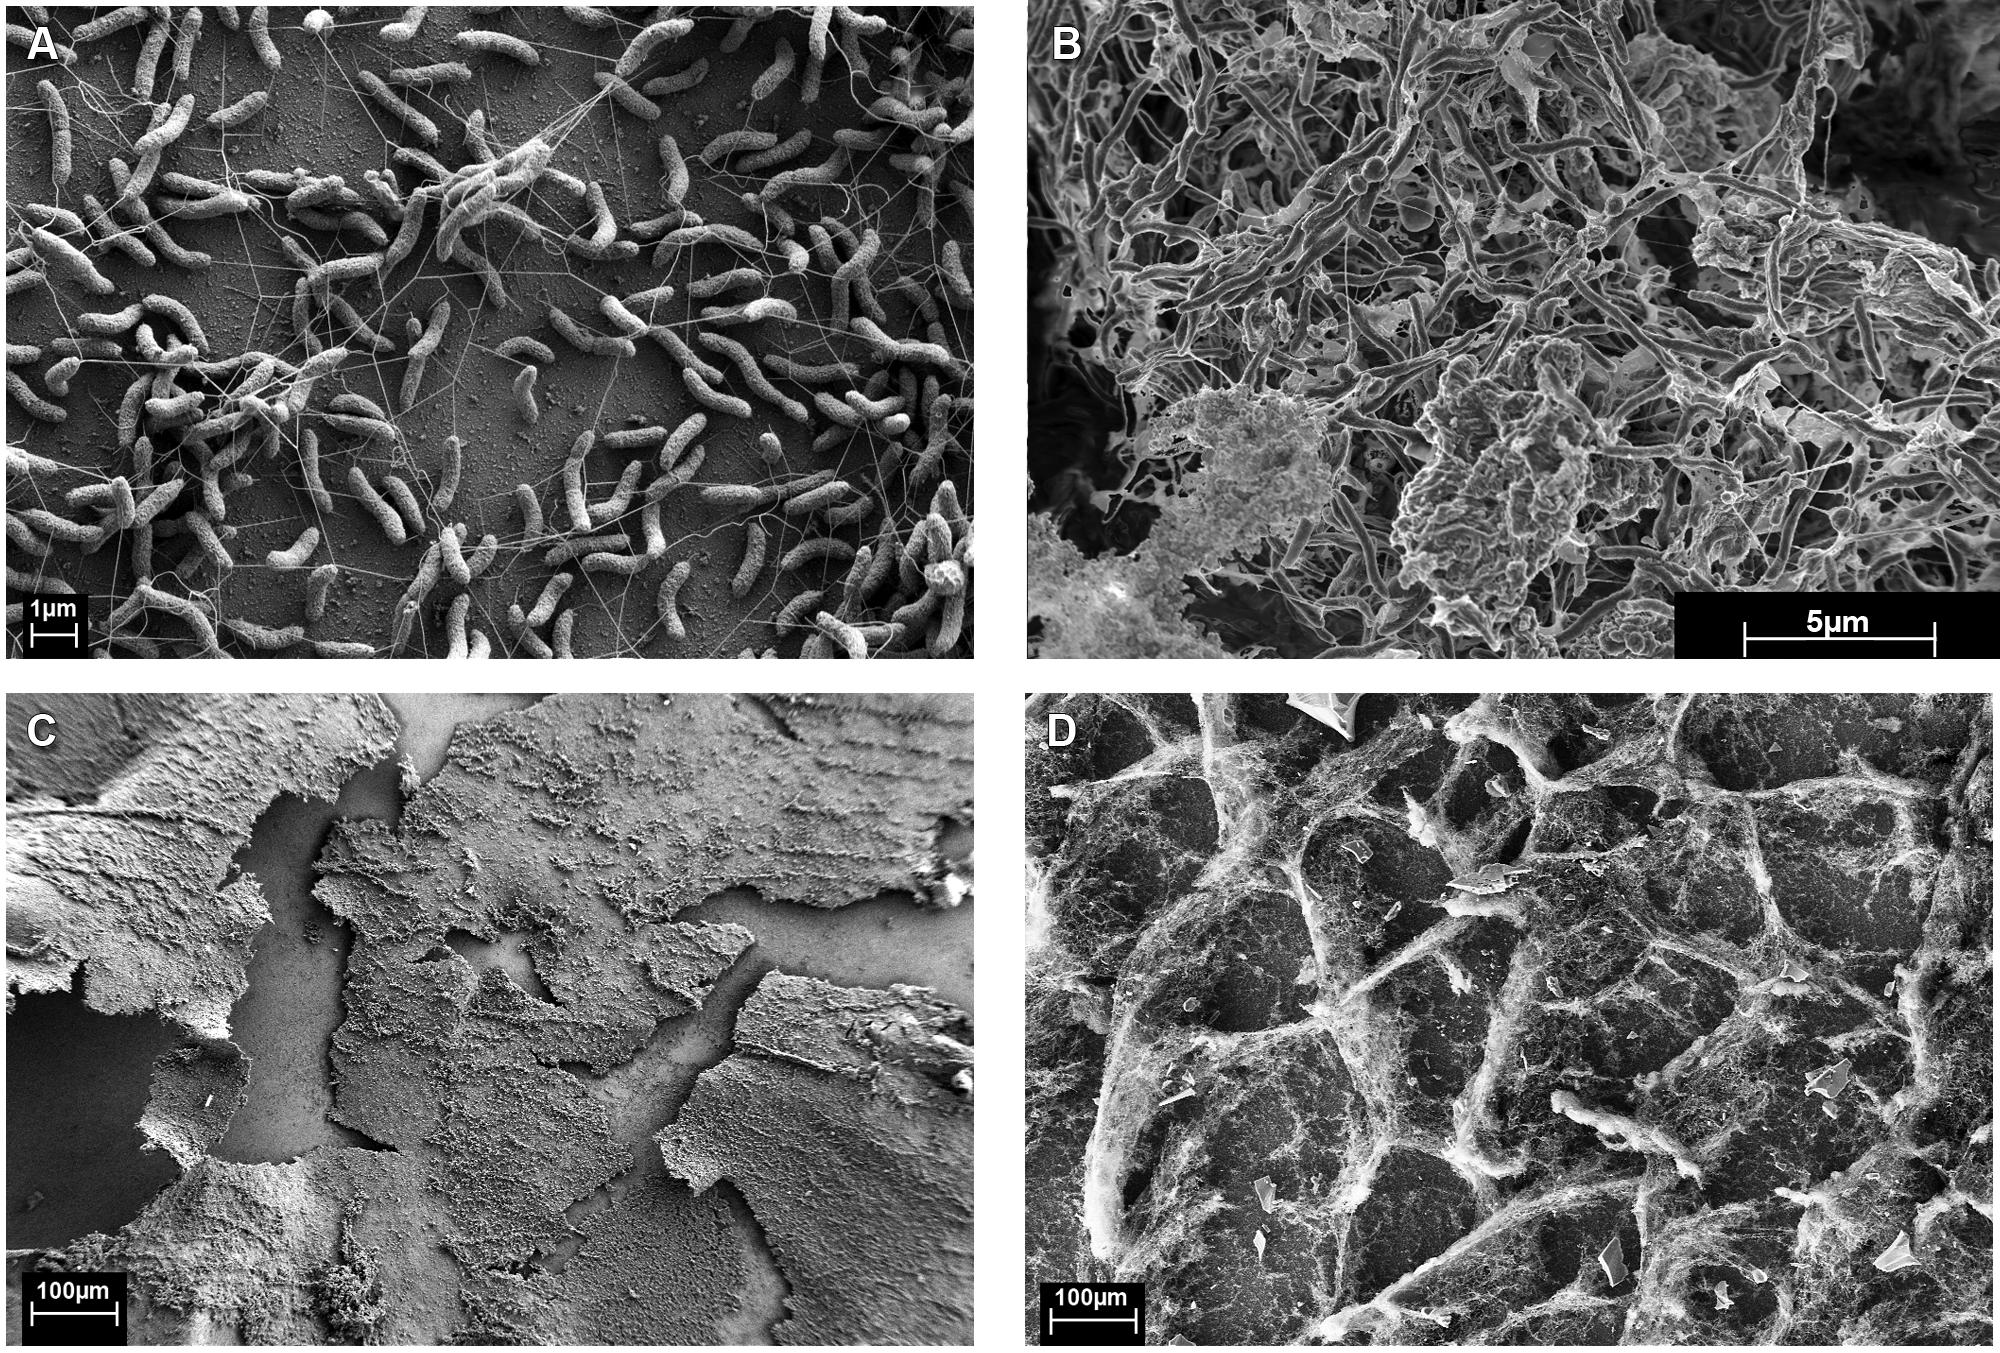 Frontiers Biofilm Growth Mode Promotes Maximum Carrying